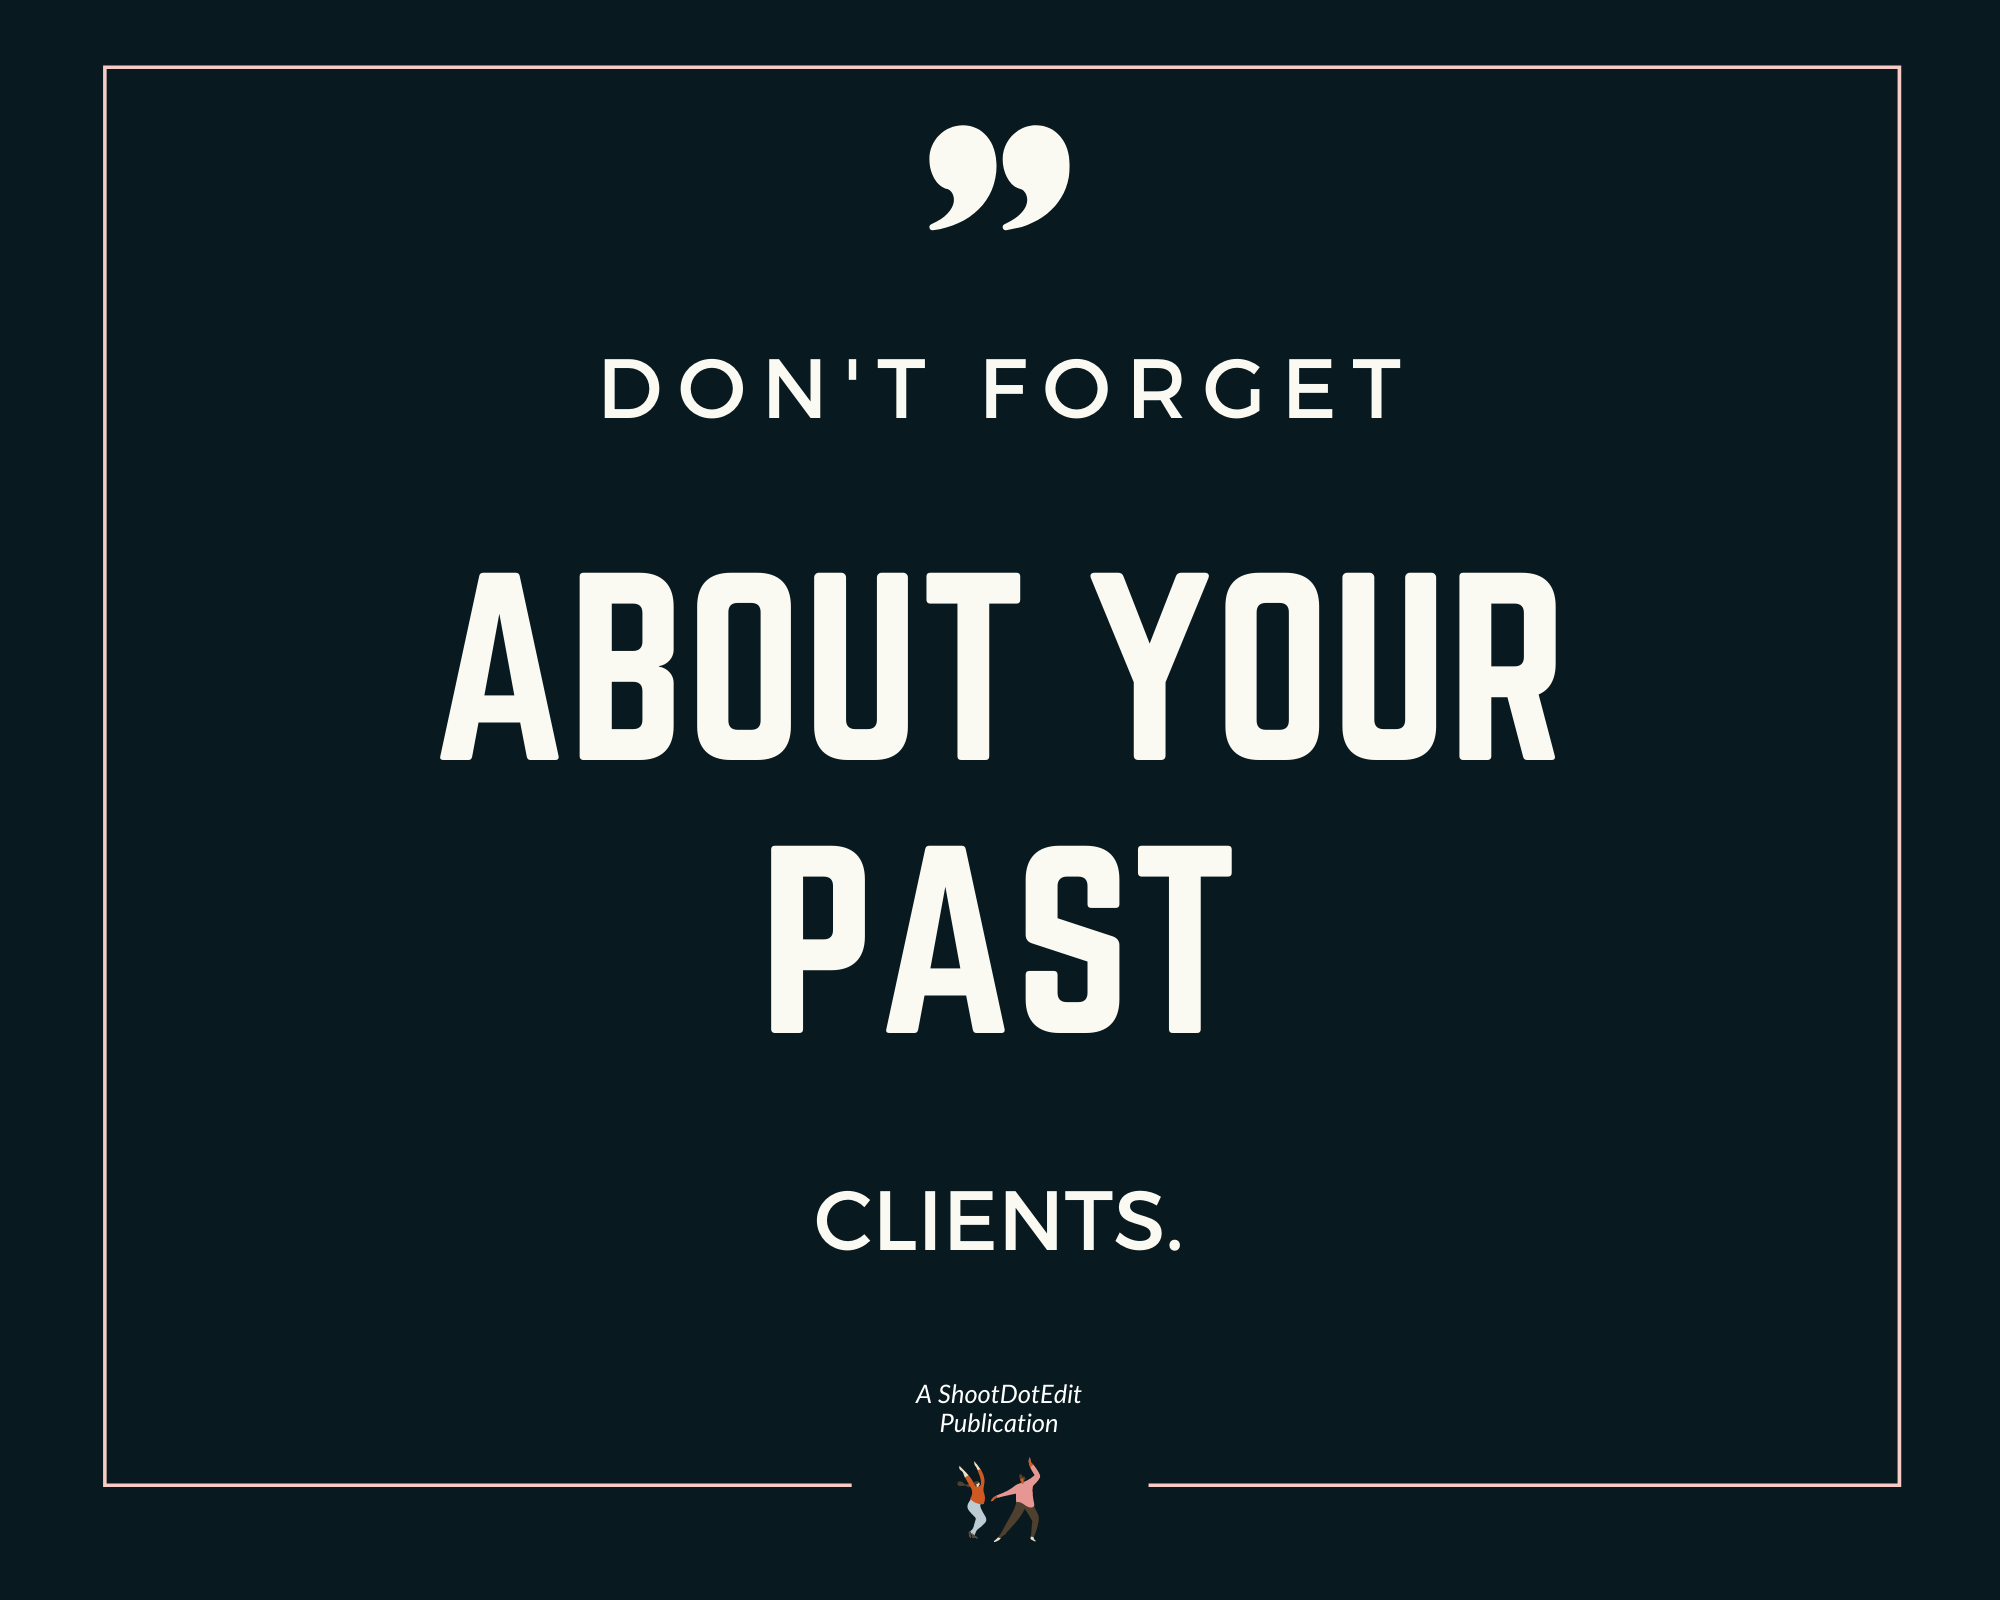 don't forget about past clients quote